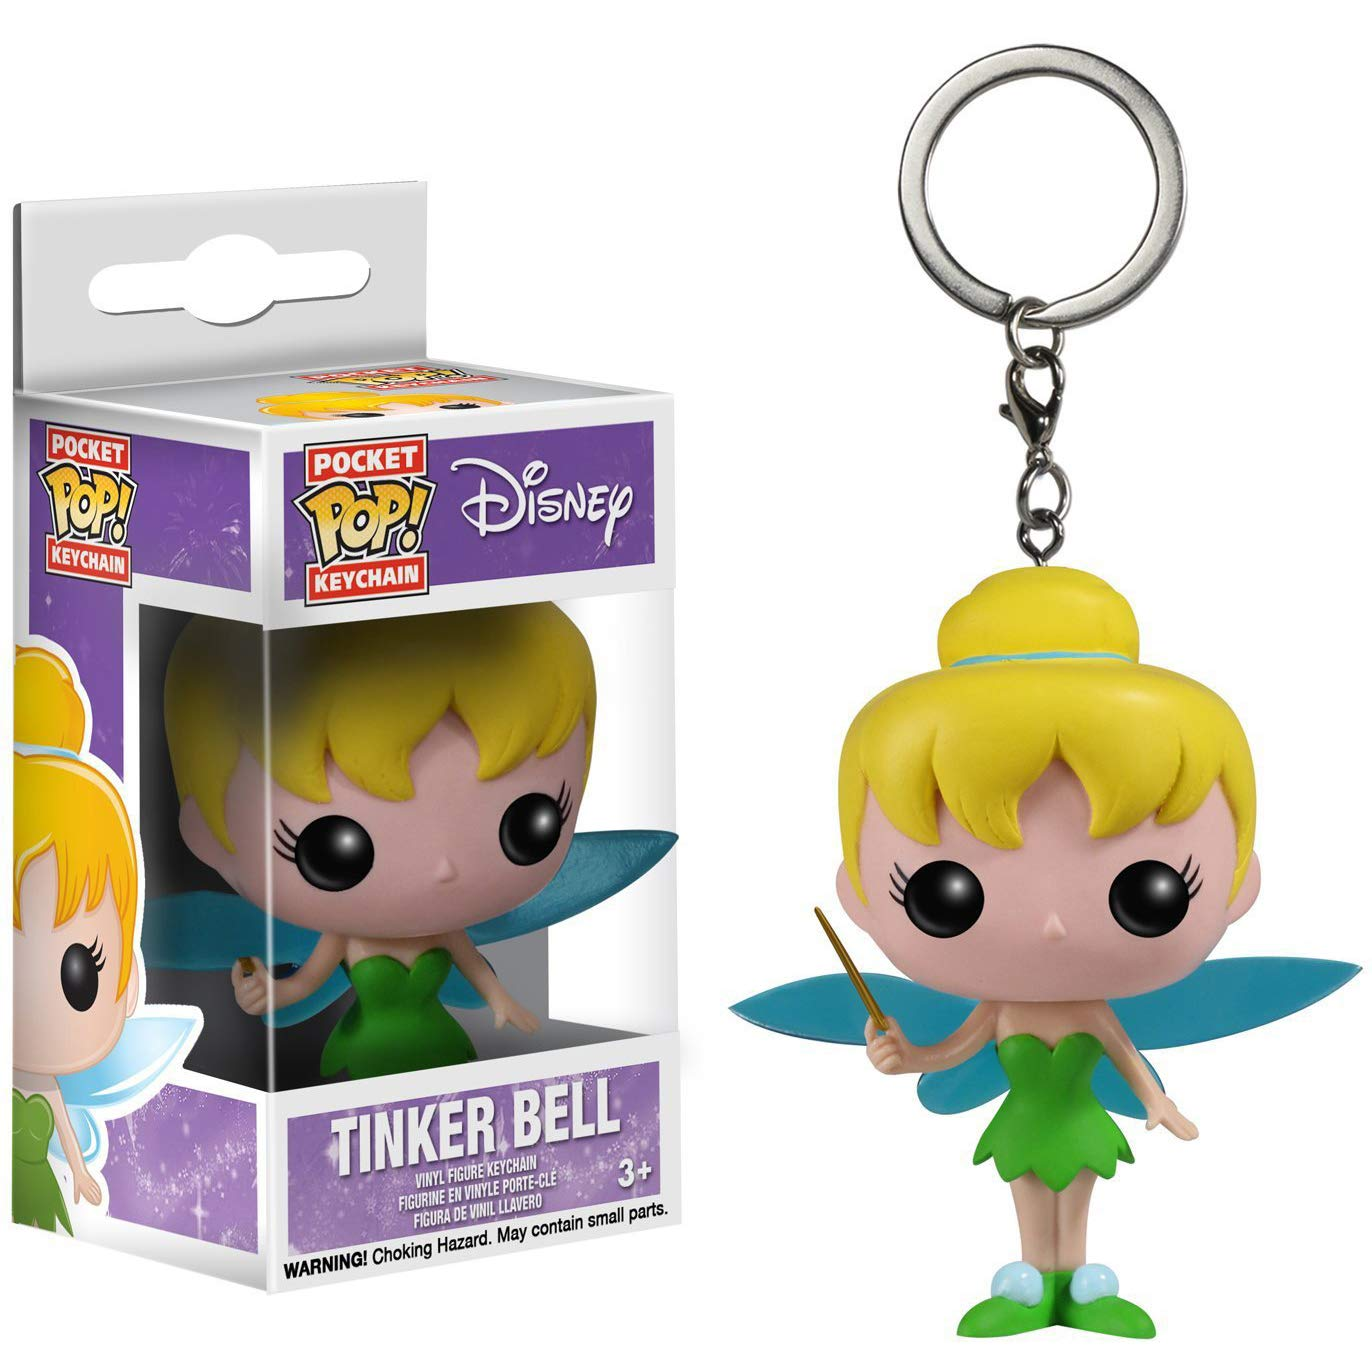 Amazon.com: Funko Tinker Bell Pocket POP! Mini-Figural ...